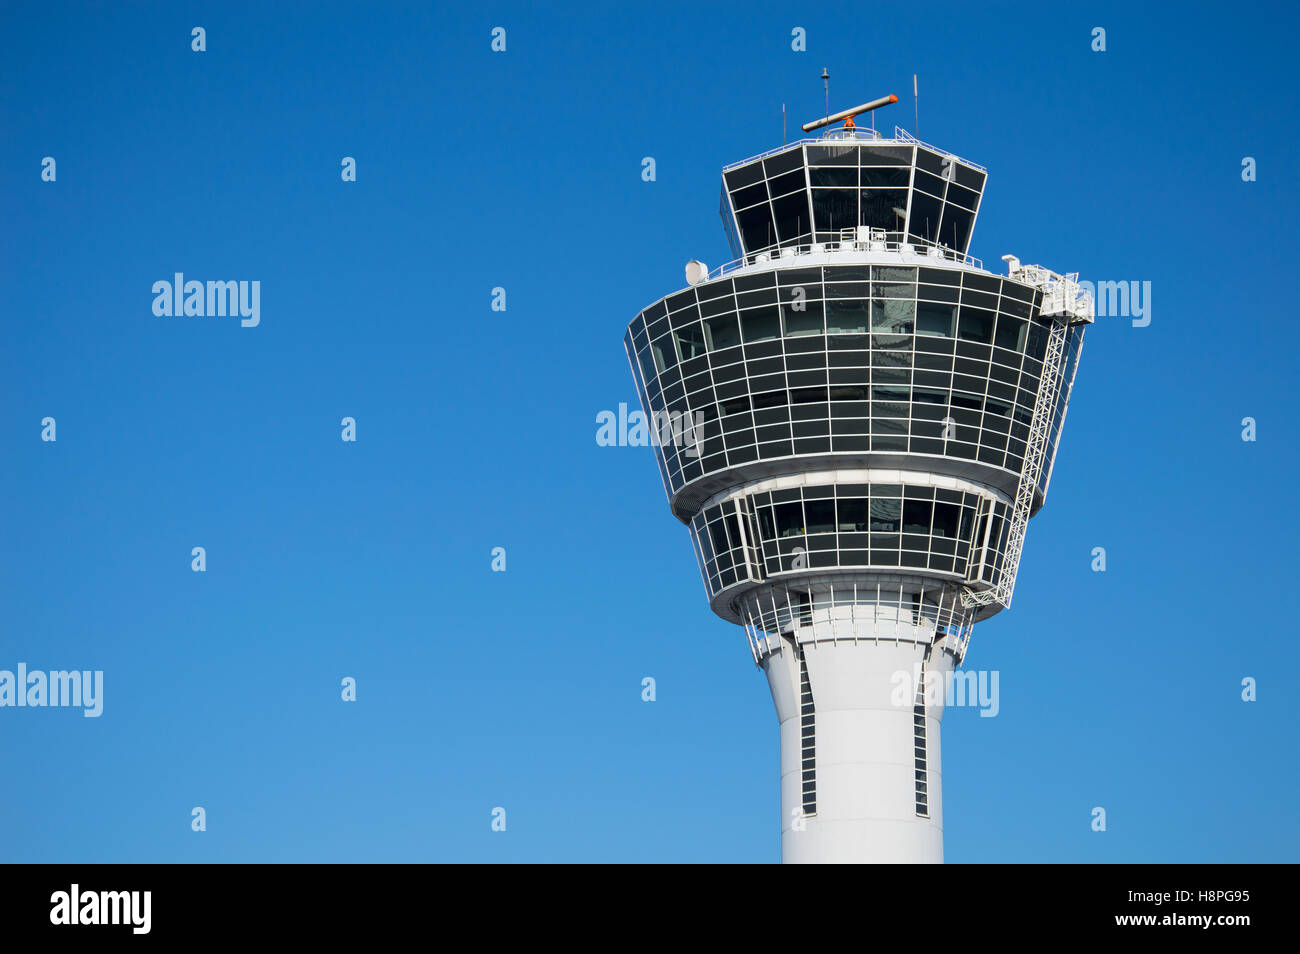 Modern air traffic control tower in international passenger airport over clear blue sky - Stock Image